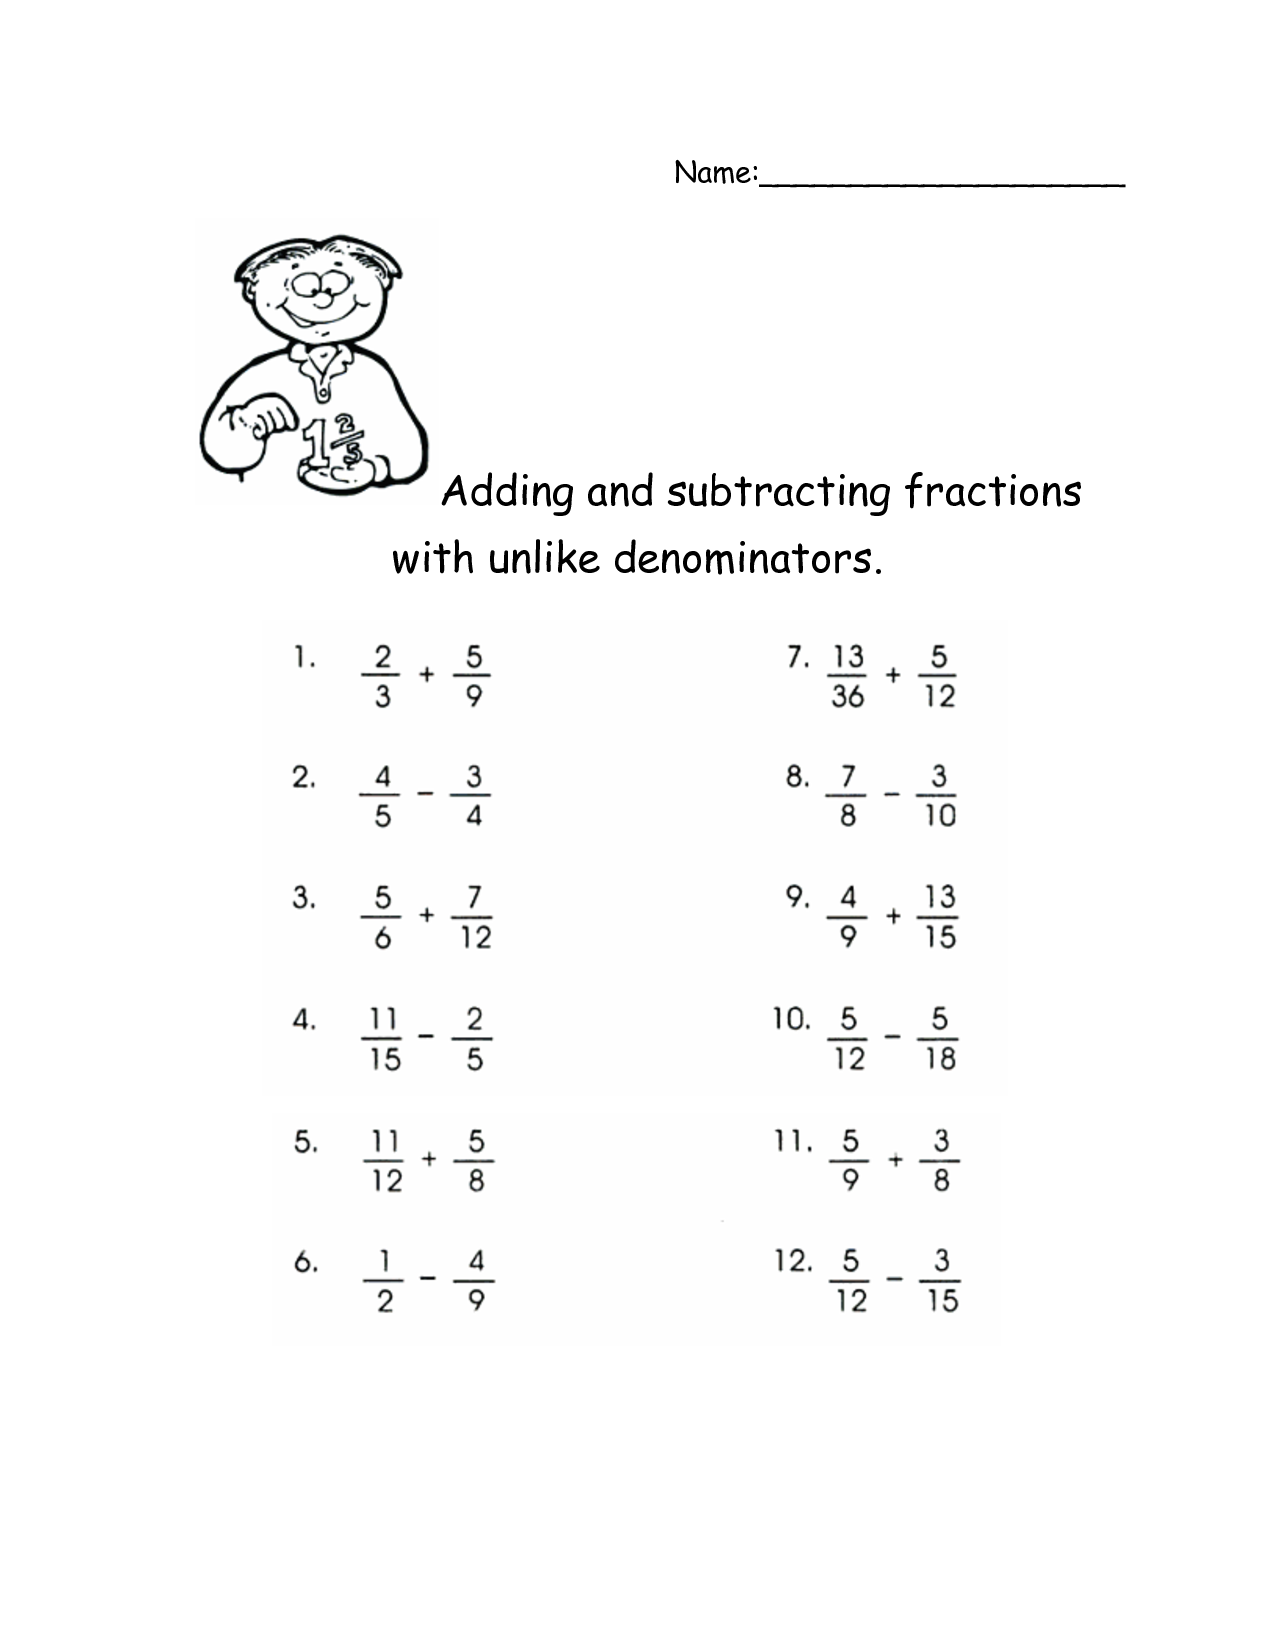 Worksheets Adding And Subtracting Fractions With Unlike Denominators Worksheets adding and subtracting fractions with unlike denominators activities activities